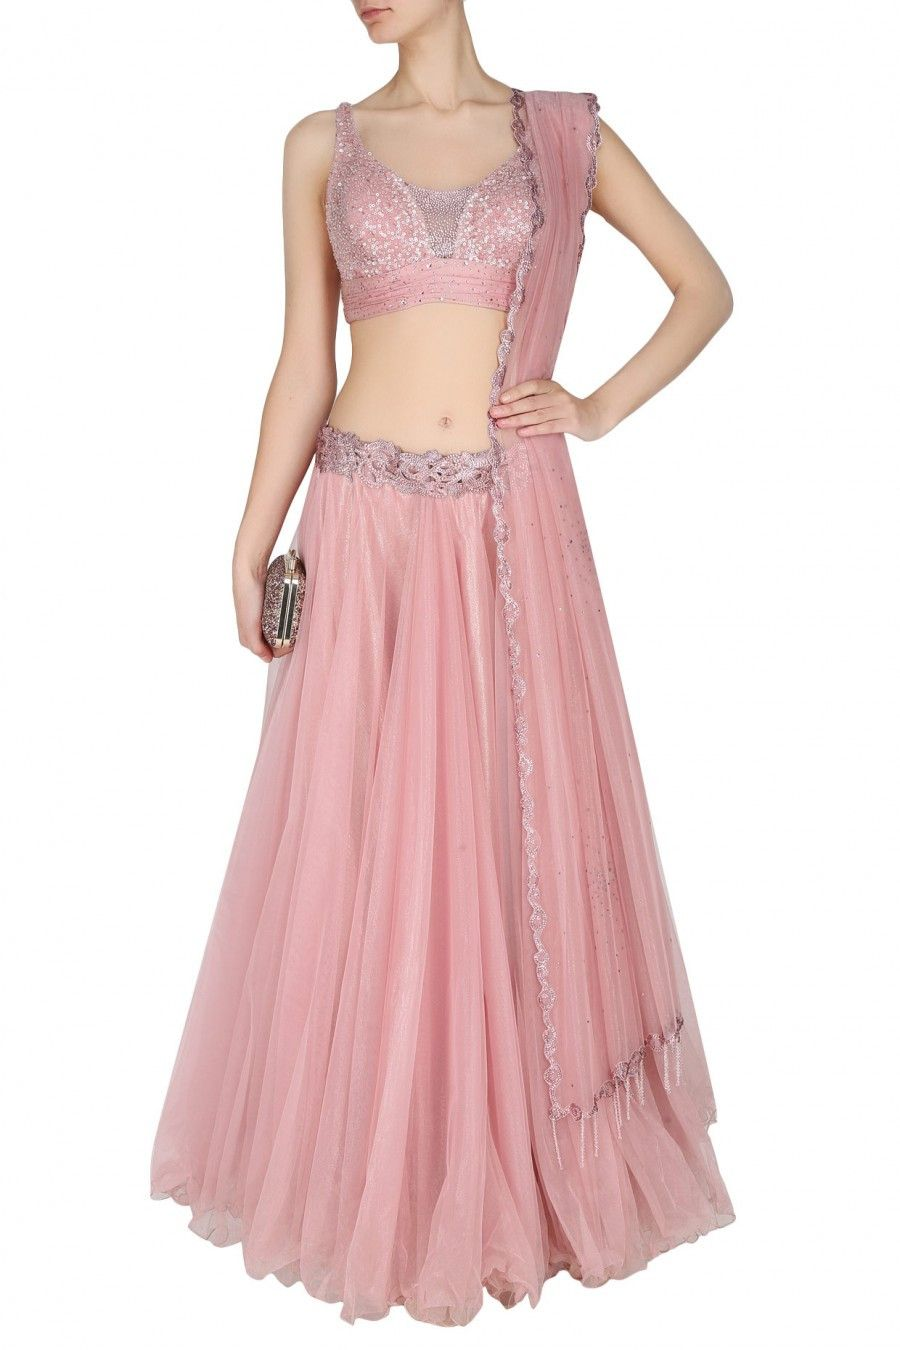 e277e6a2bb It is appliqued with pink thread work embroidery and crystal sequins in  paisley motifs on the waist band.